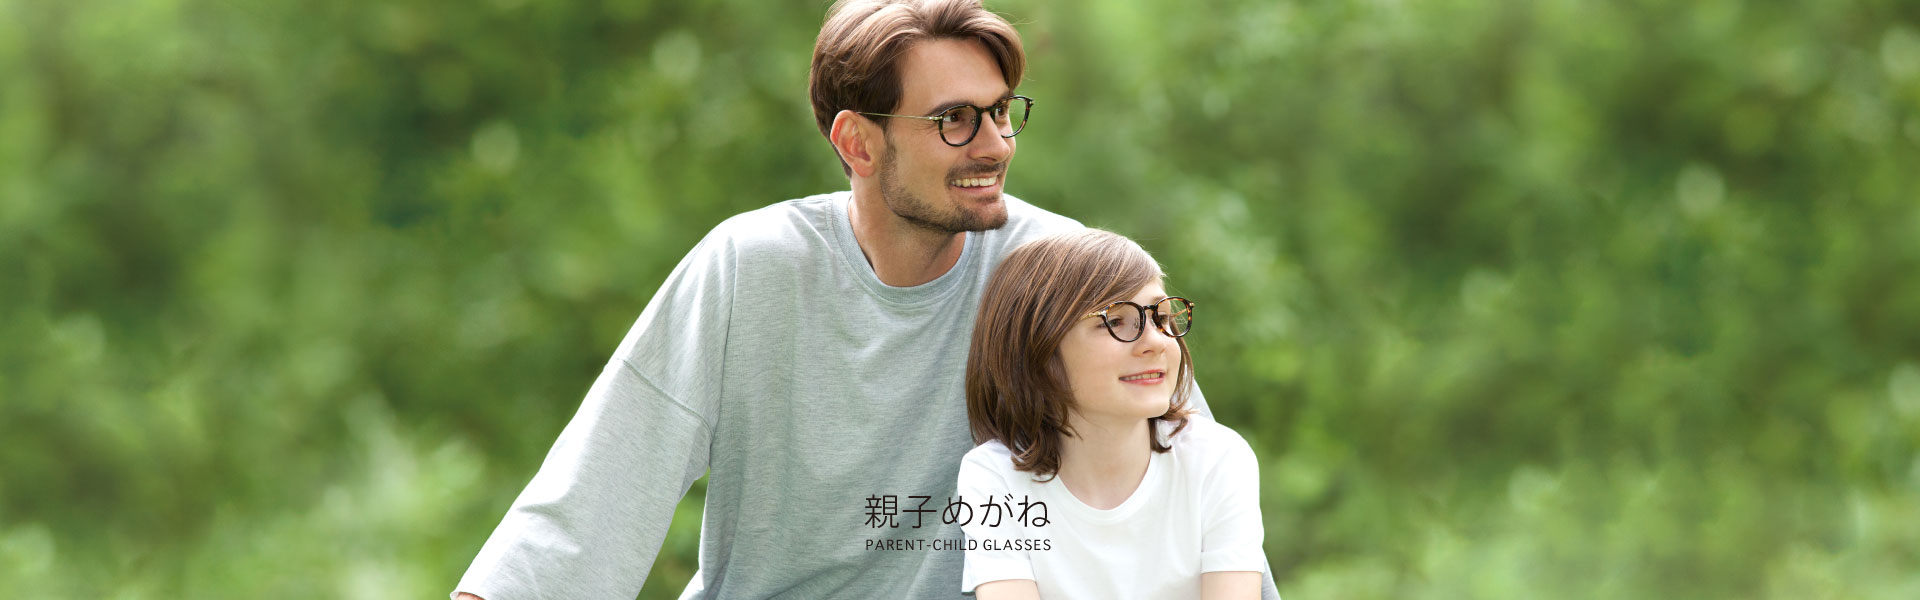 親子めがね -PARENT-CHILD GLASSES-